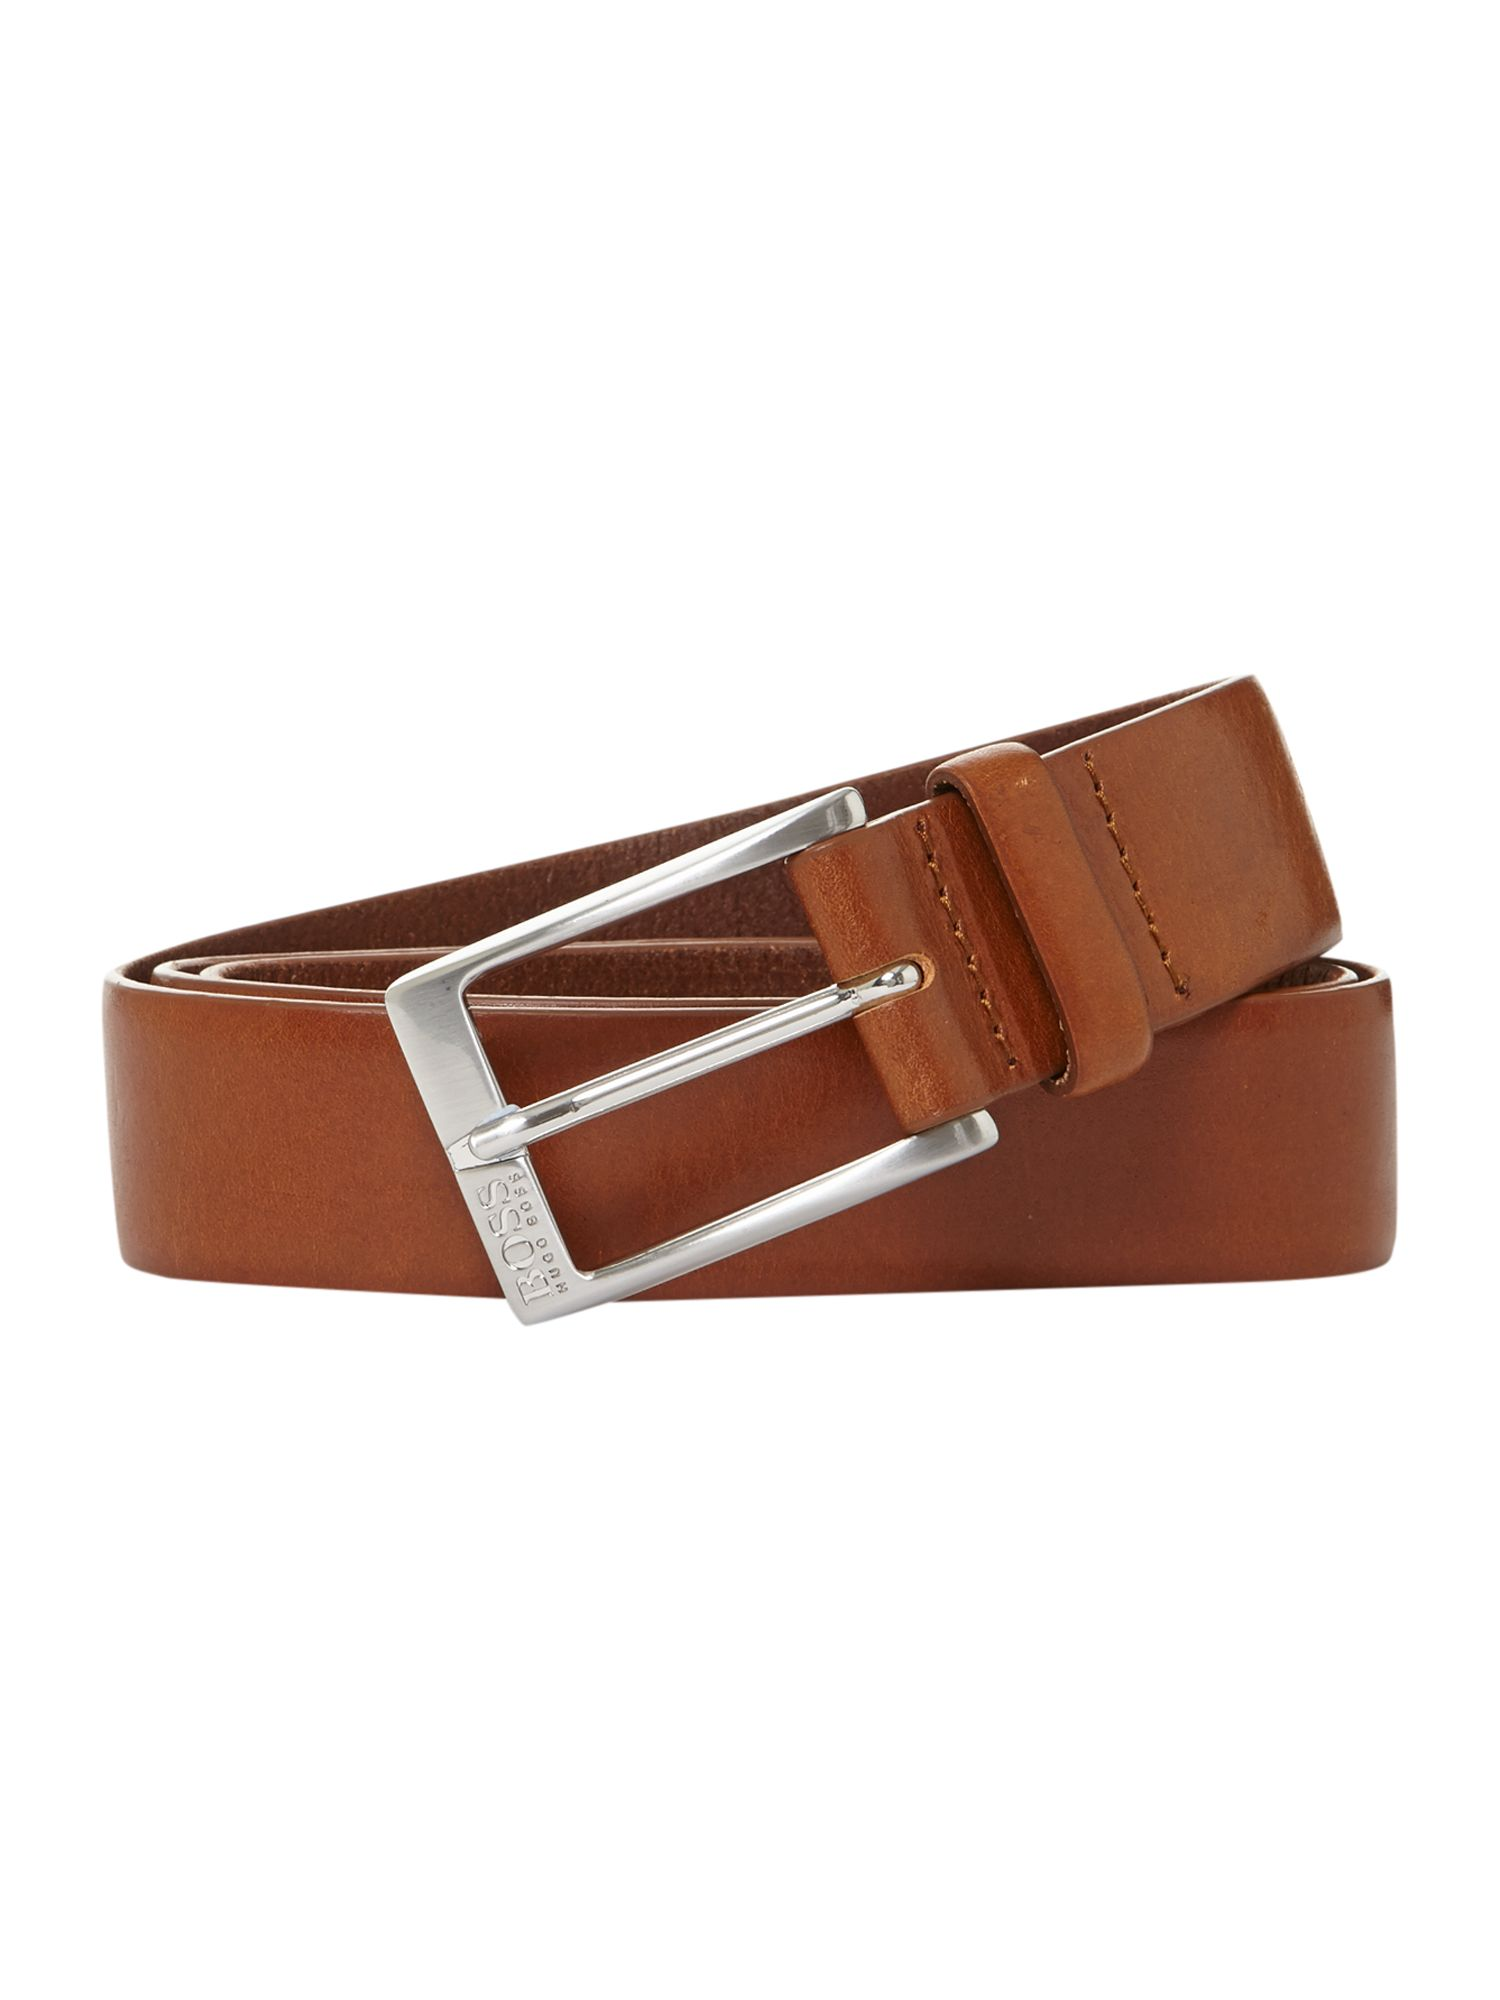 Eberio logo buckle belt